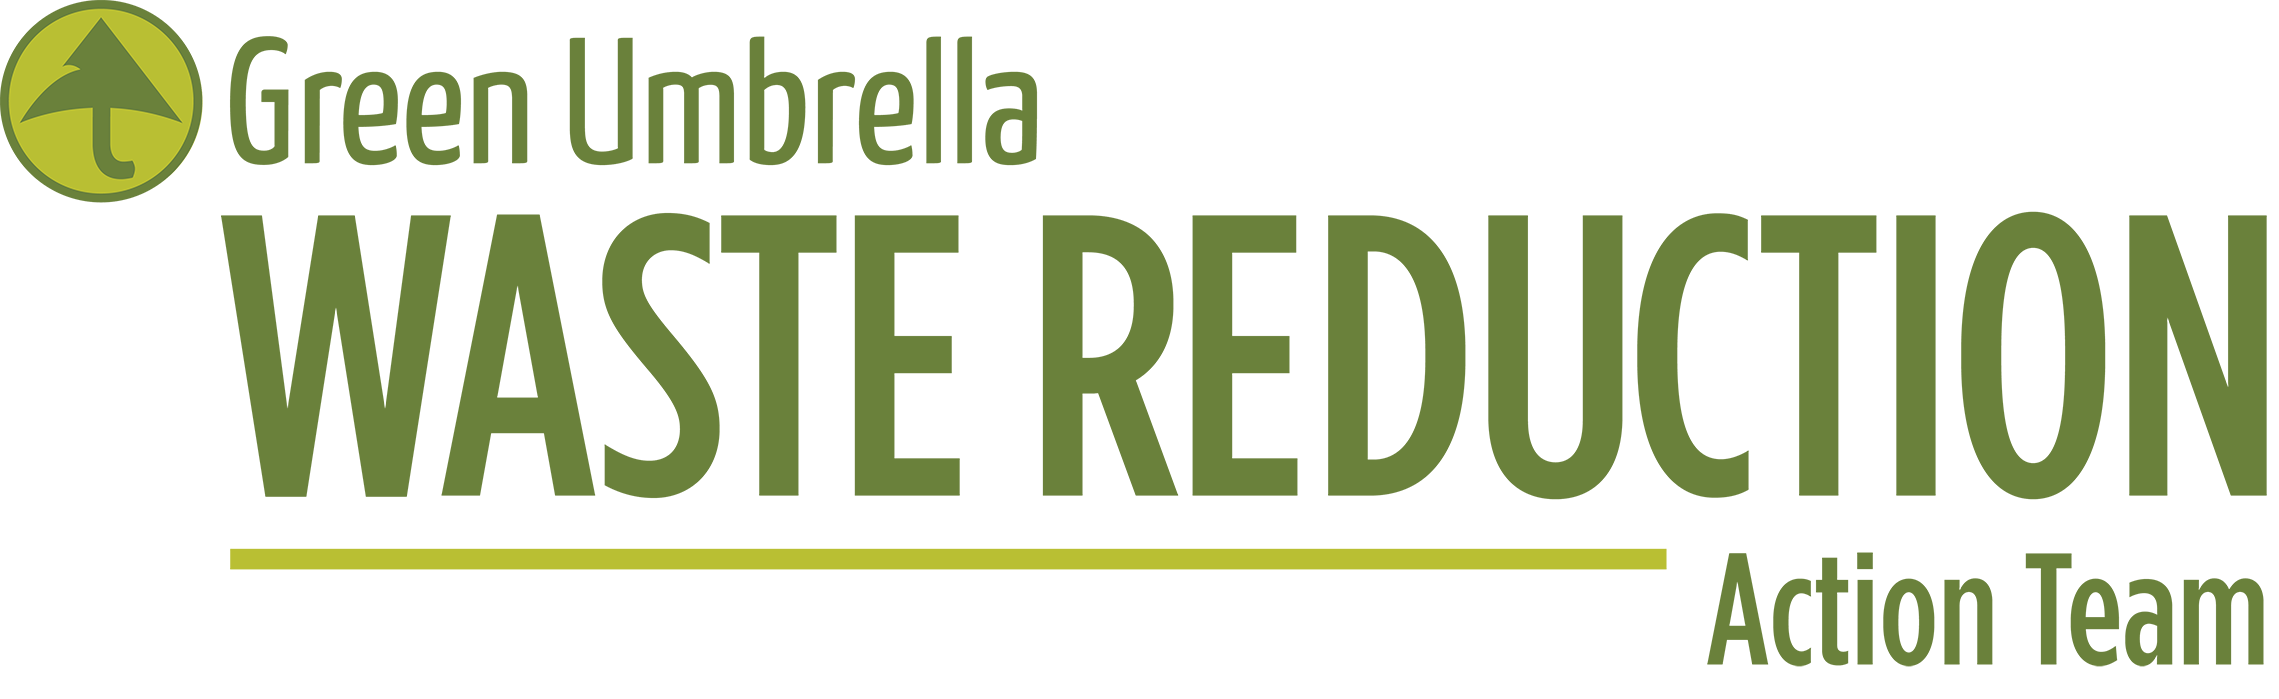 Green Umbrella - Waste Reduction